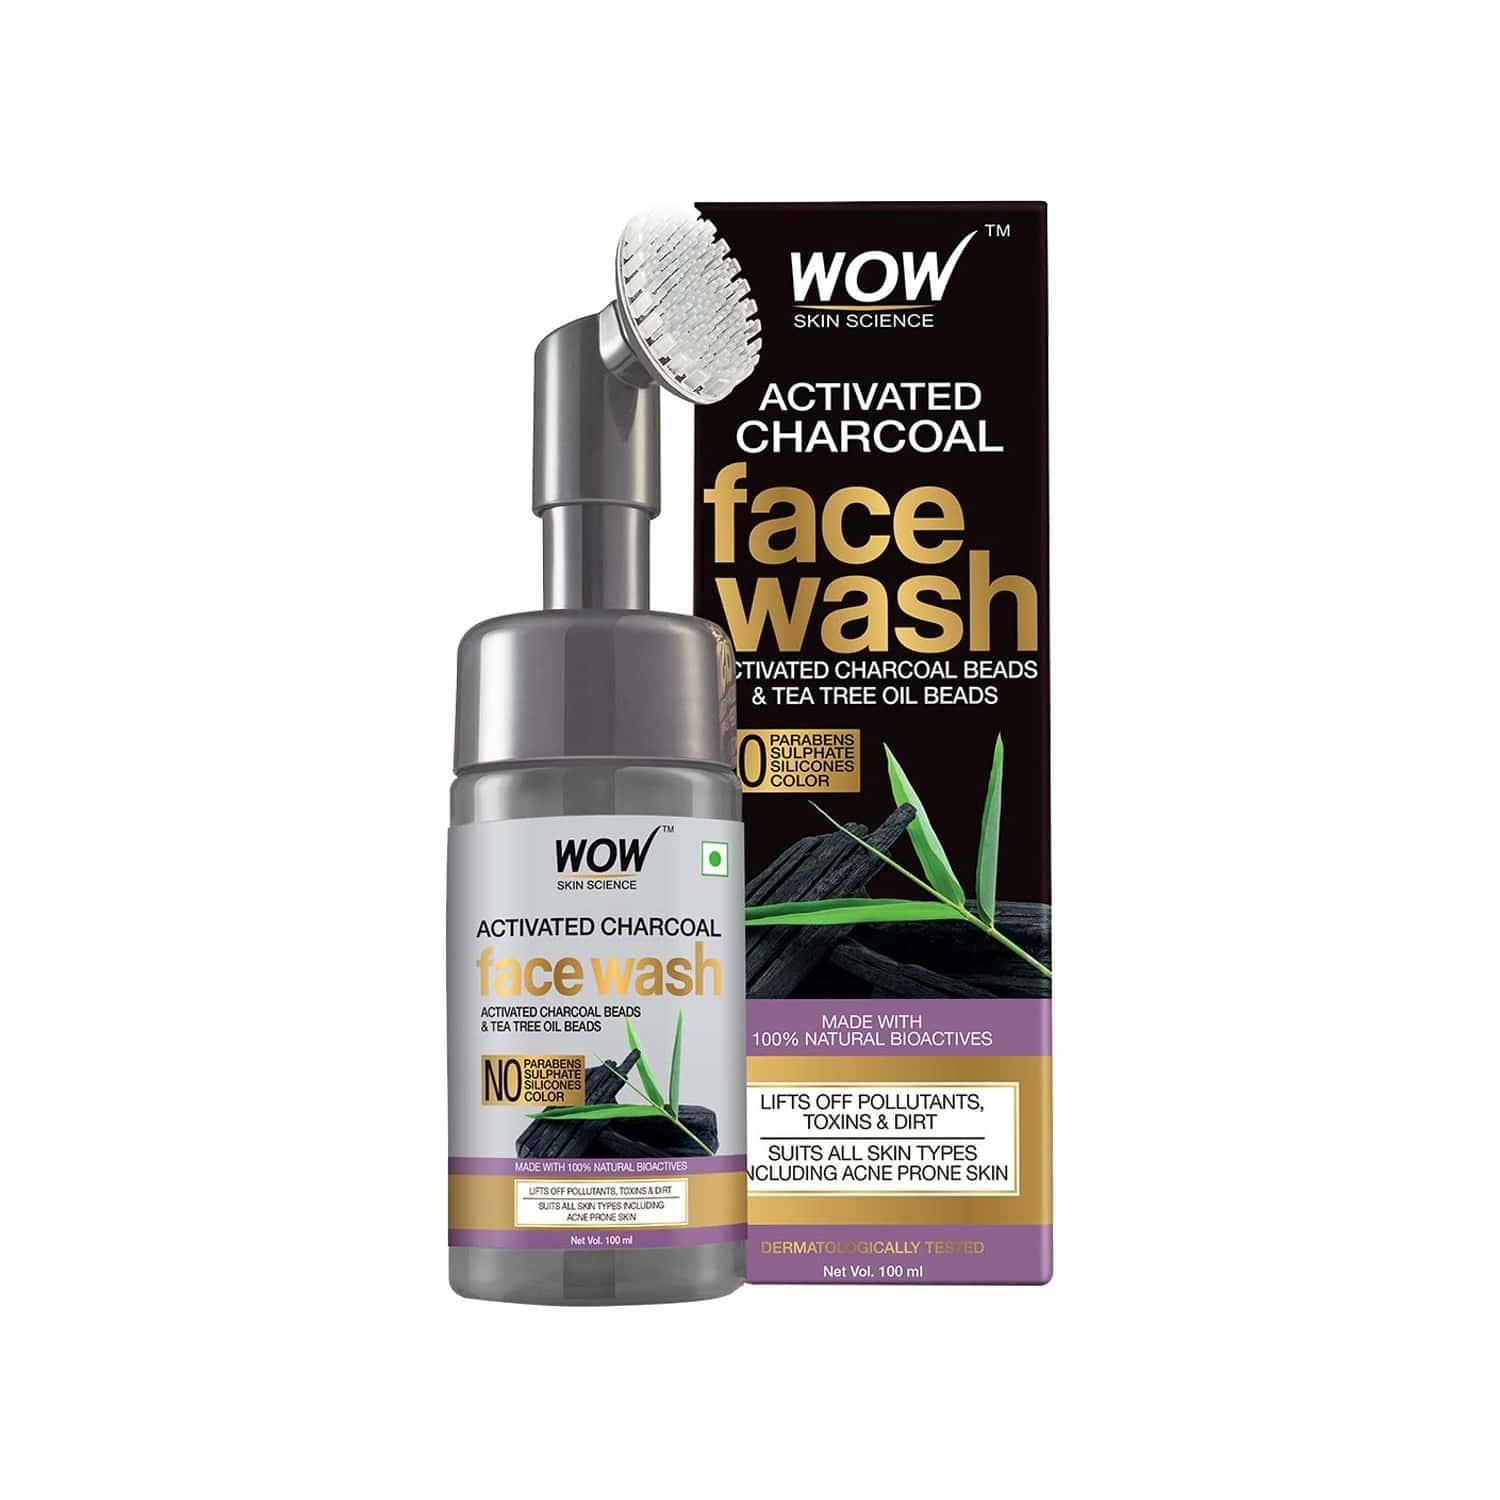 Wow Skin Science Charcoal Foaming Face Wash With Built-in Face Brush - 100 Ml